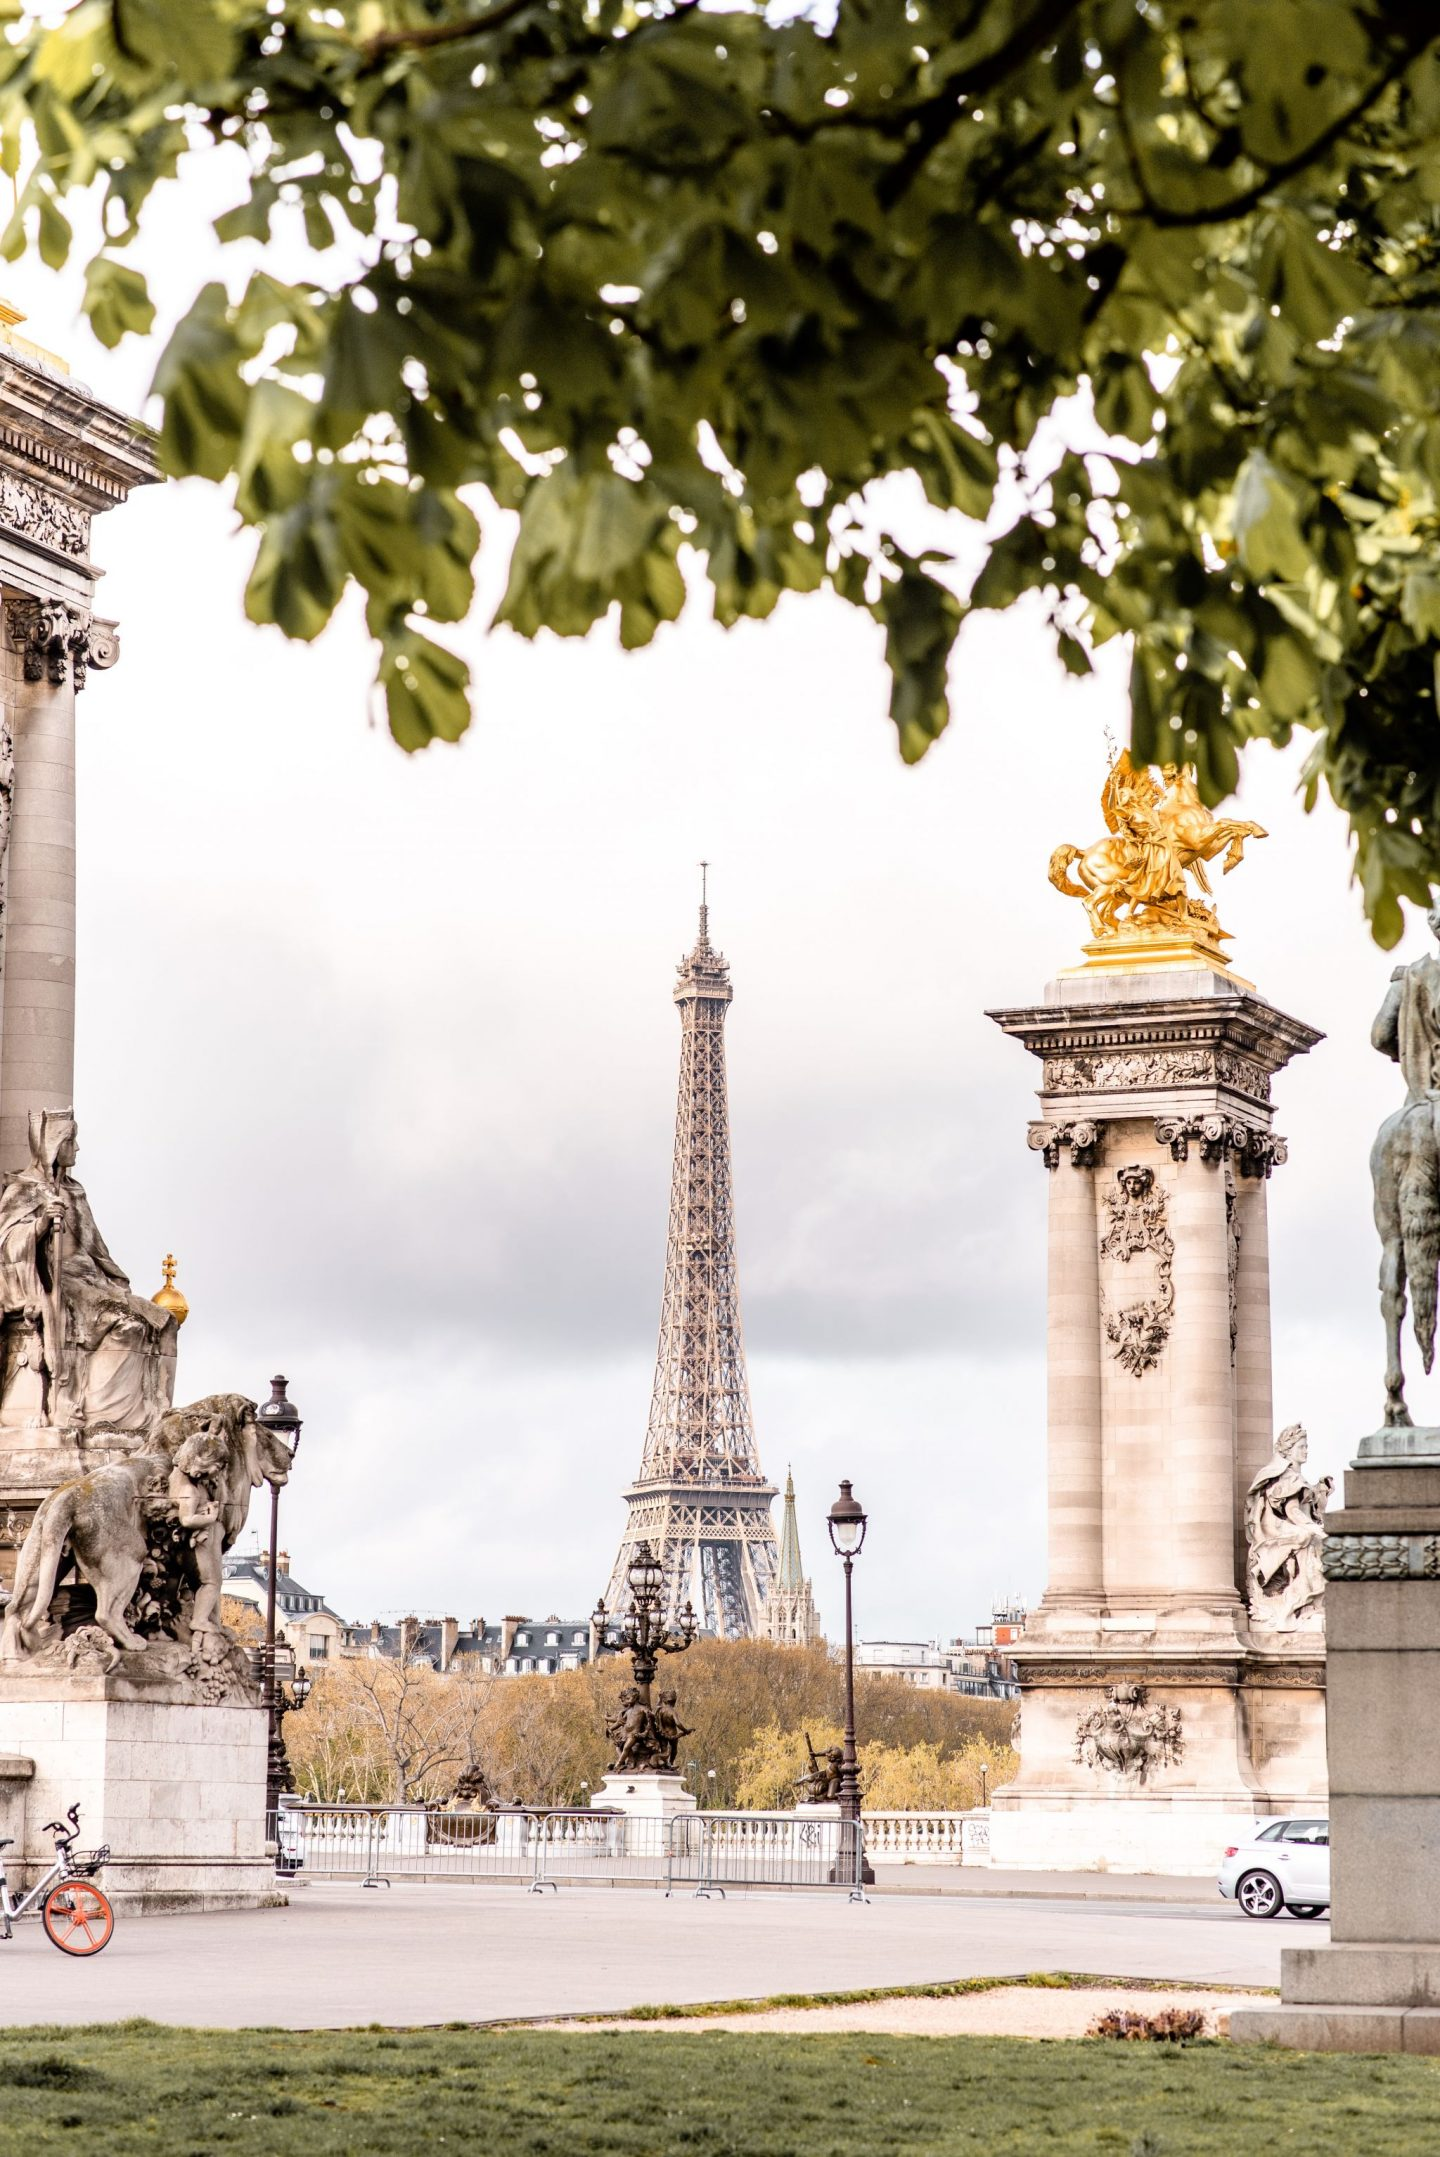 The Best Eiffel Tower Photo Spots in Paris